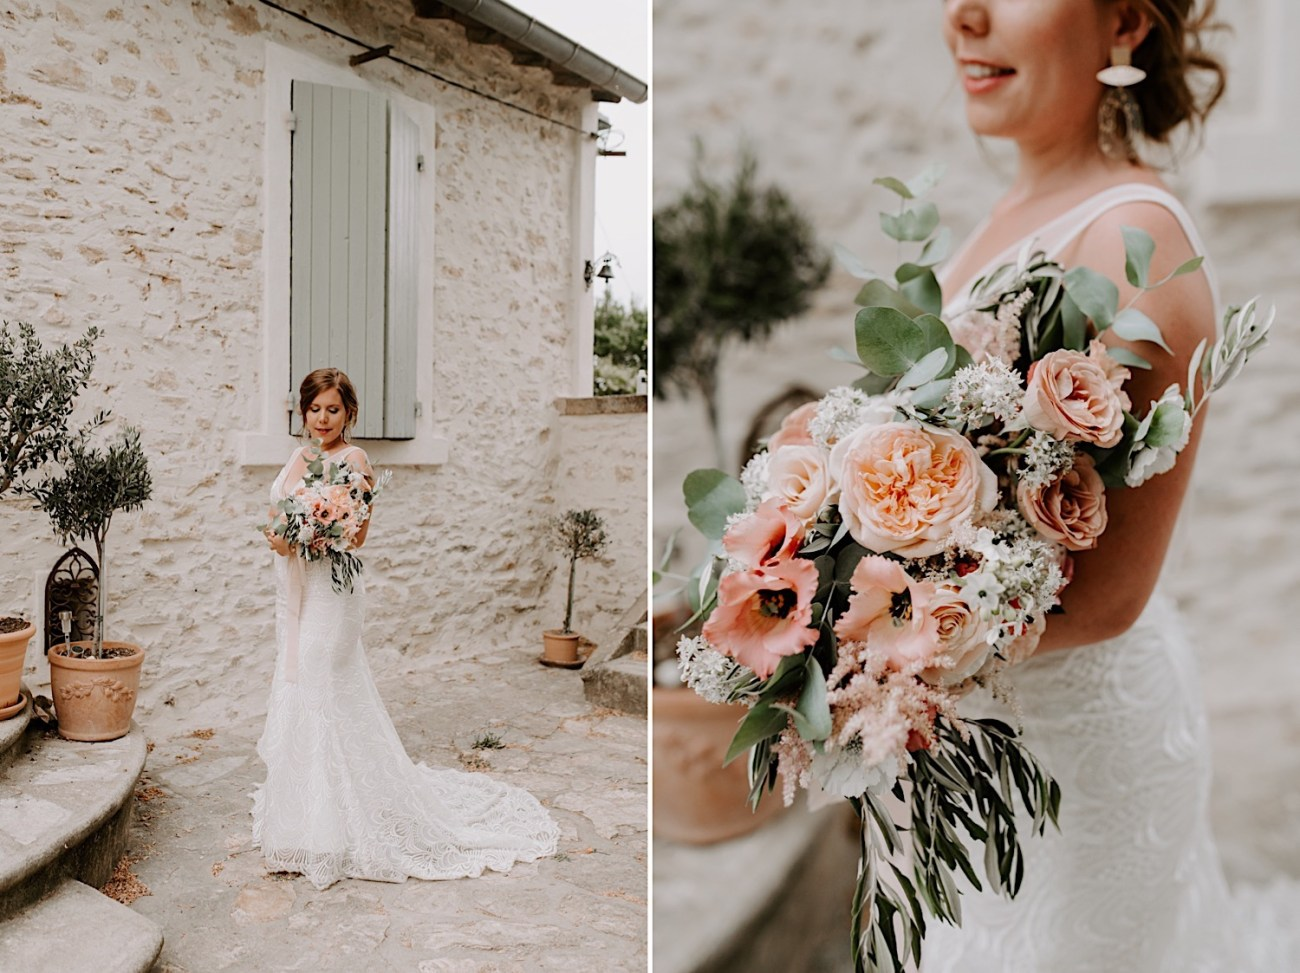 Terre Ugo Un Marriage En Provence Lavender Field Wedding French Wedding Provence Wedding Destination Wedding France Photographe De Marriage Provence France Anais Possamai Photography 17